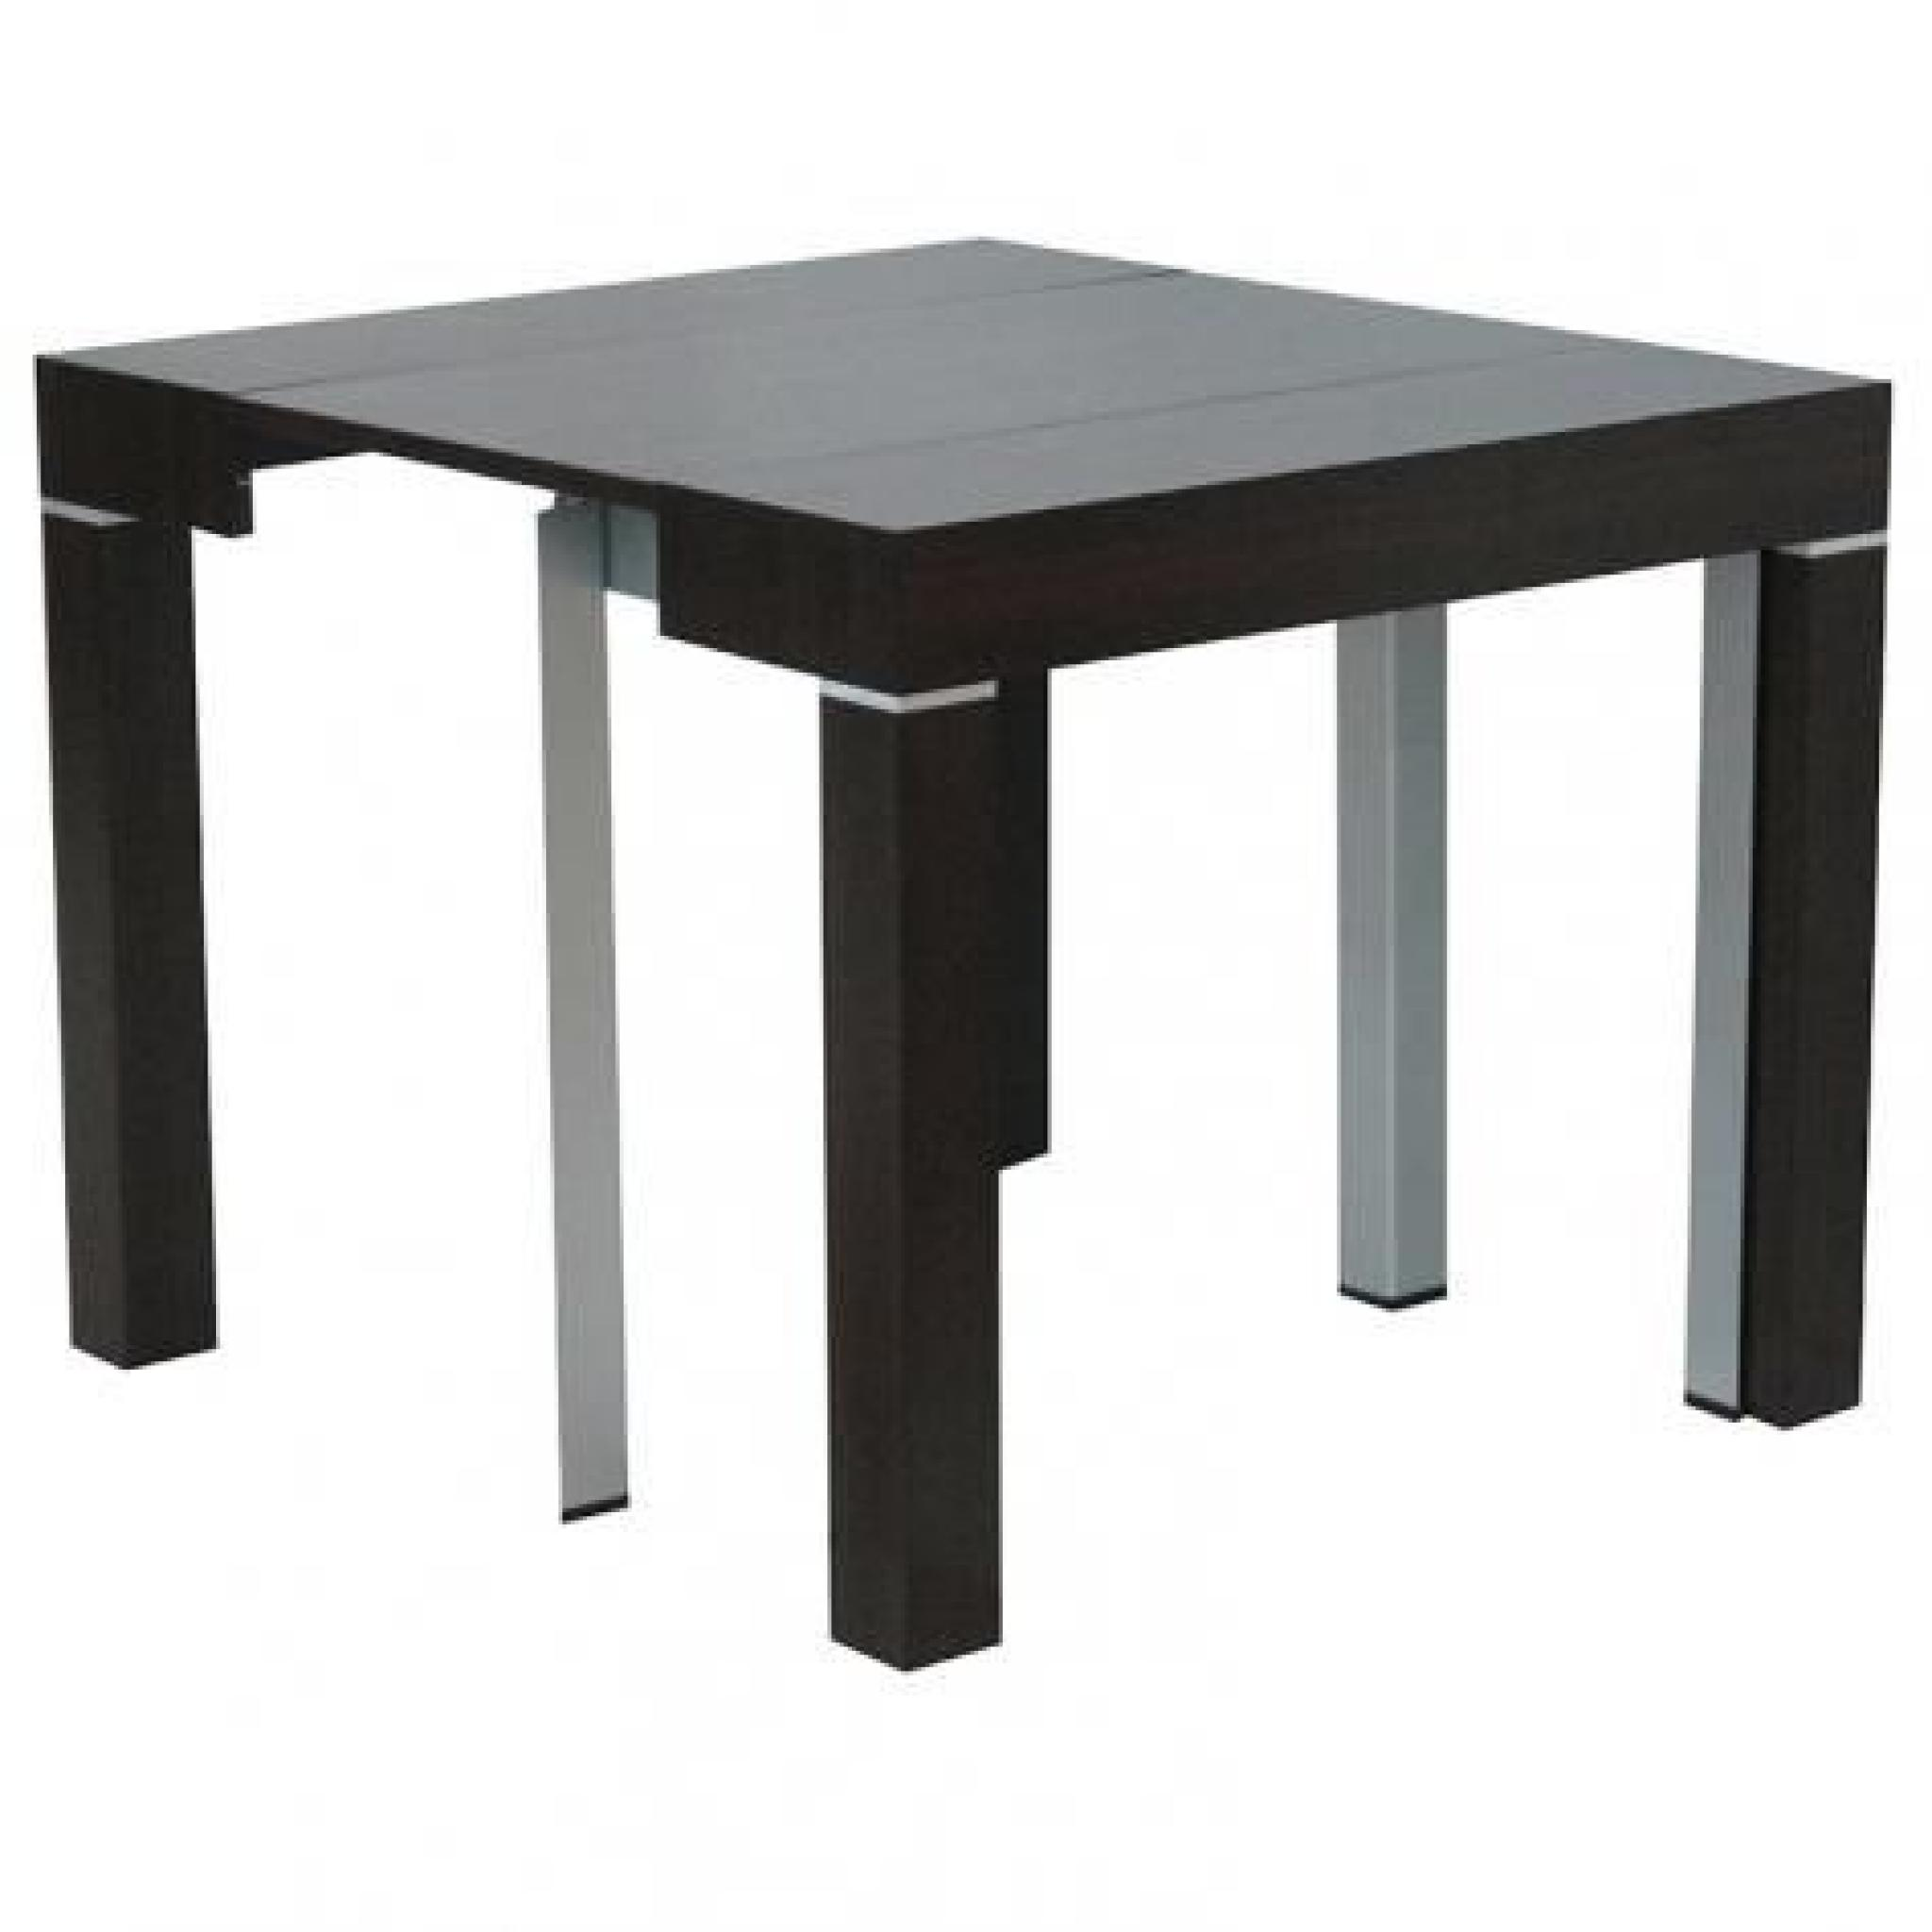 Table console extensible wenge avec 4 rallonges alesia for Console meuble pas cher design